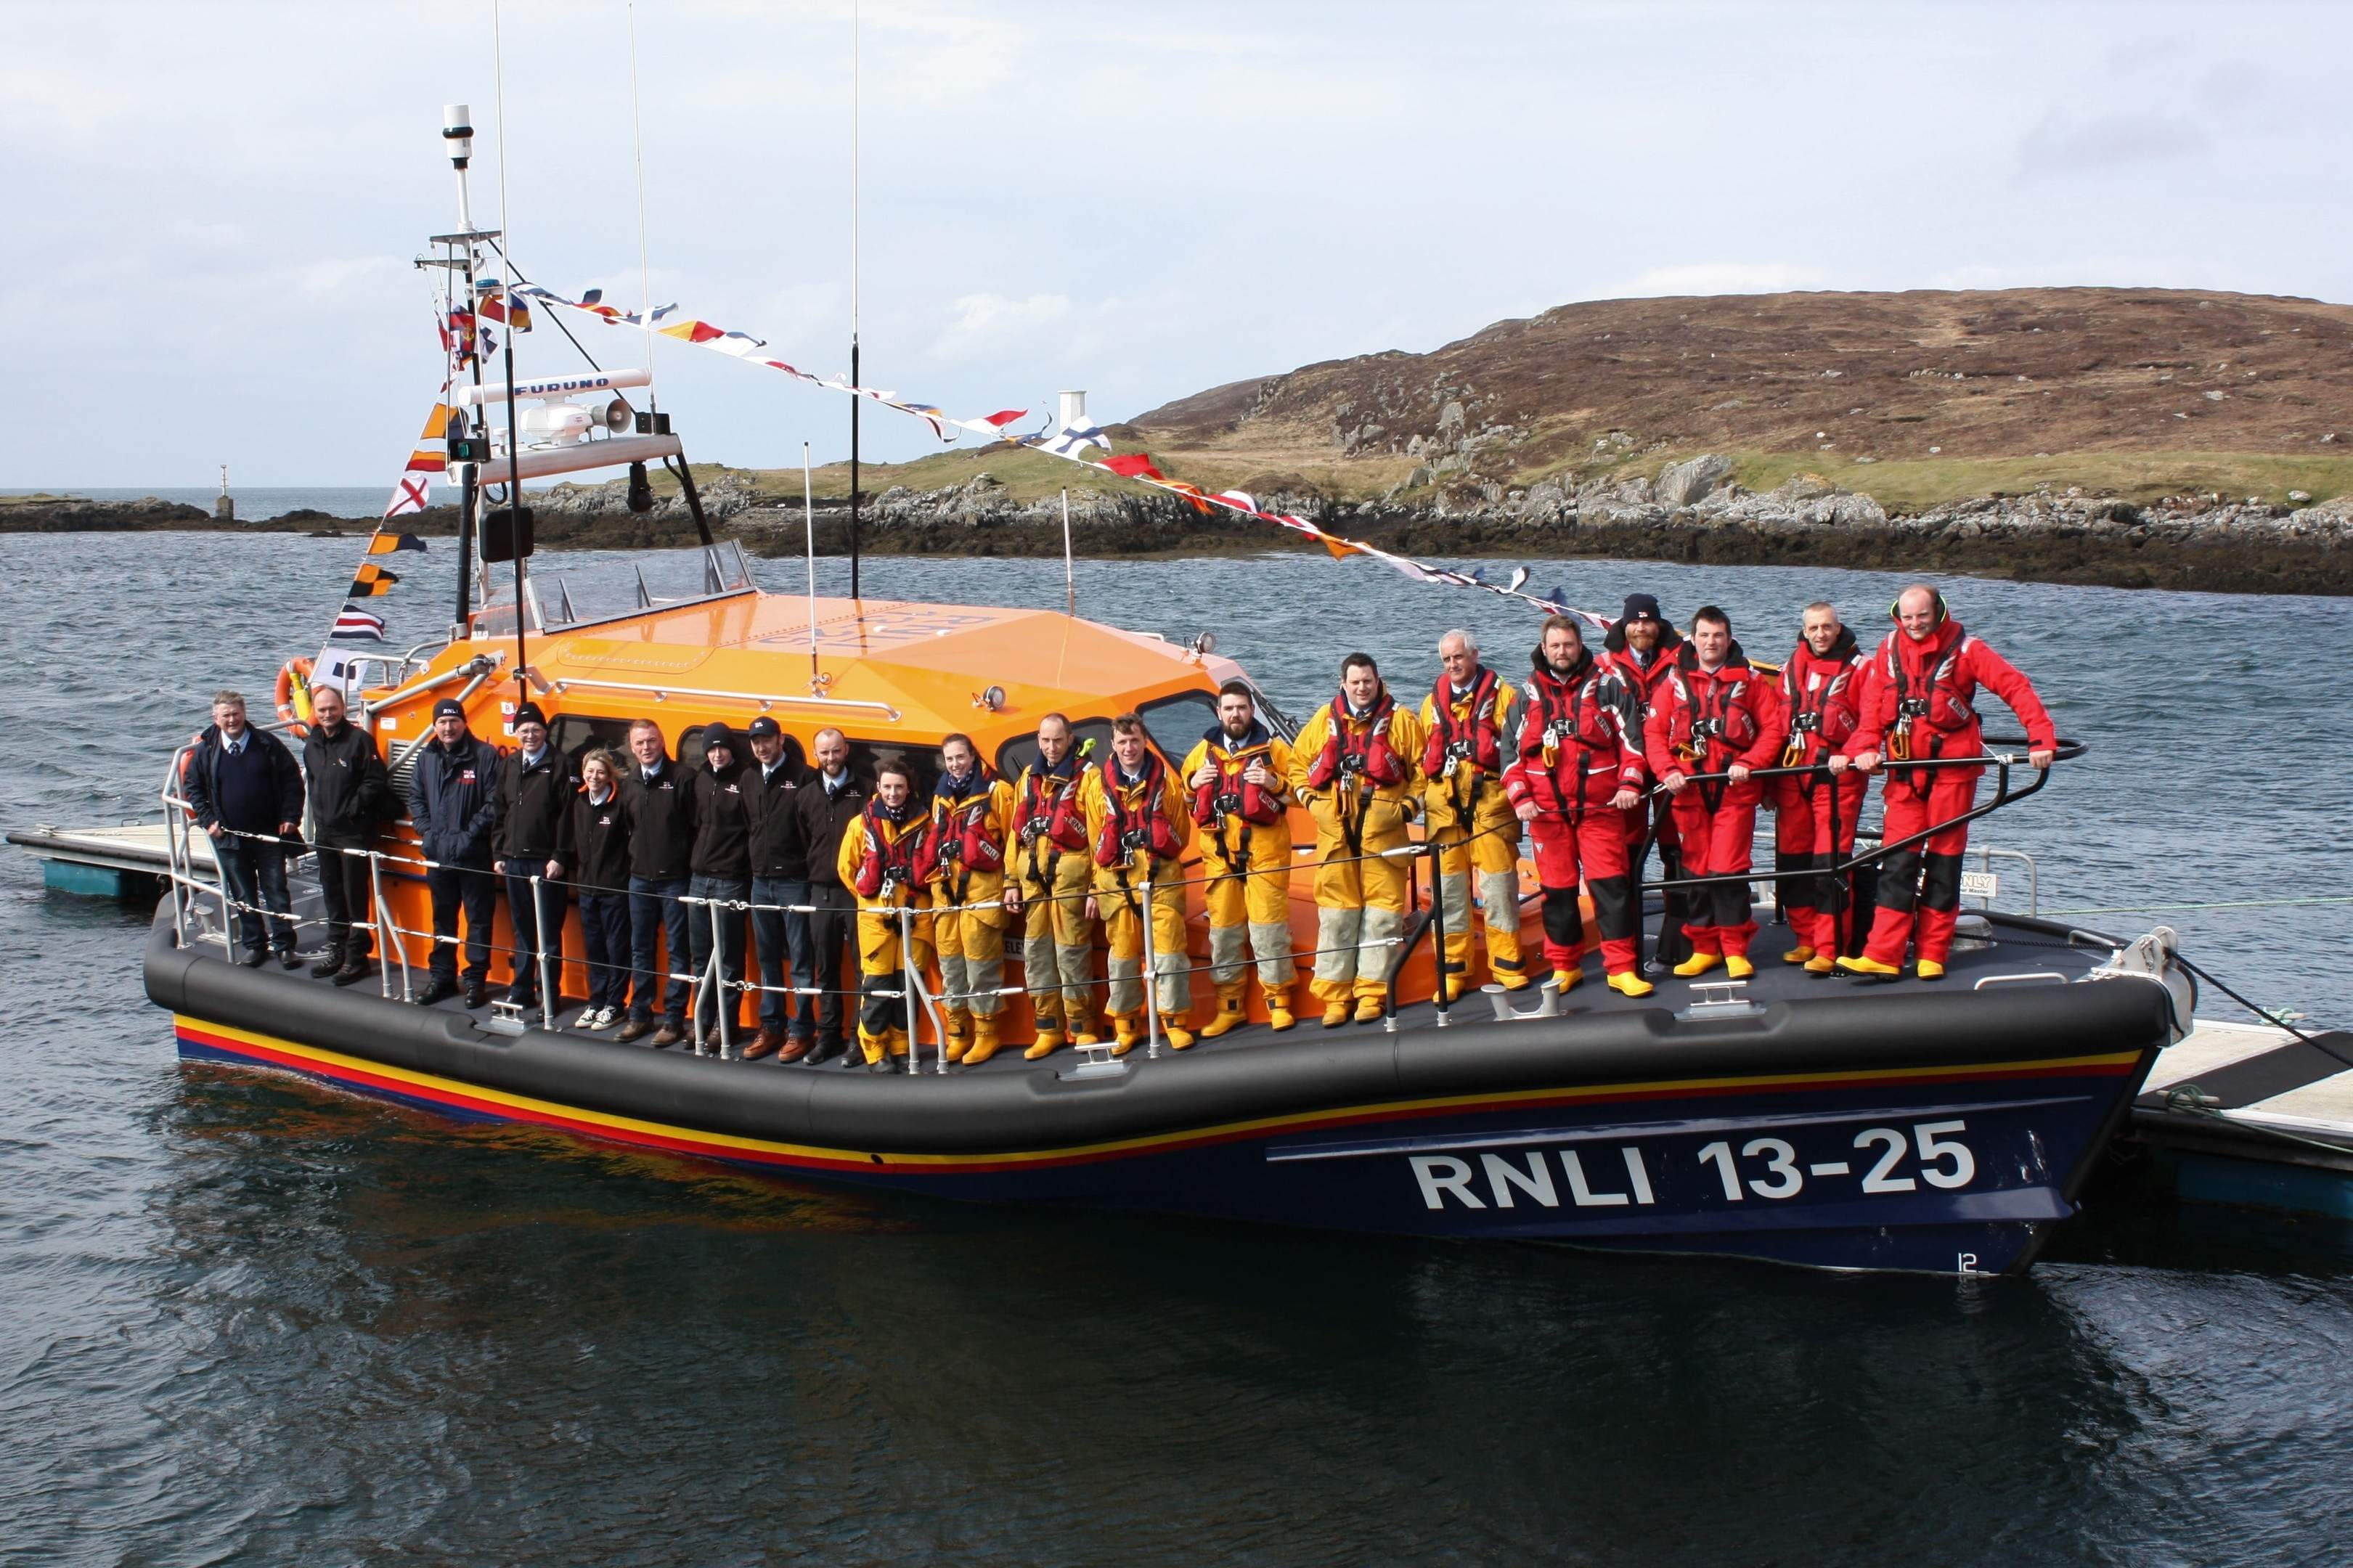 RNLI crews arrive at Leverburgh with the brand new lifeboat.